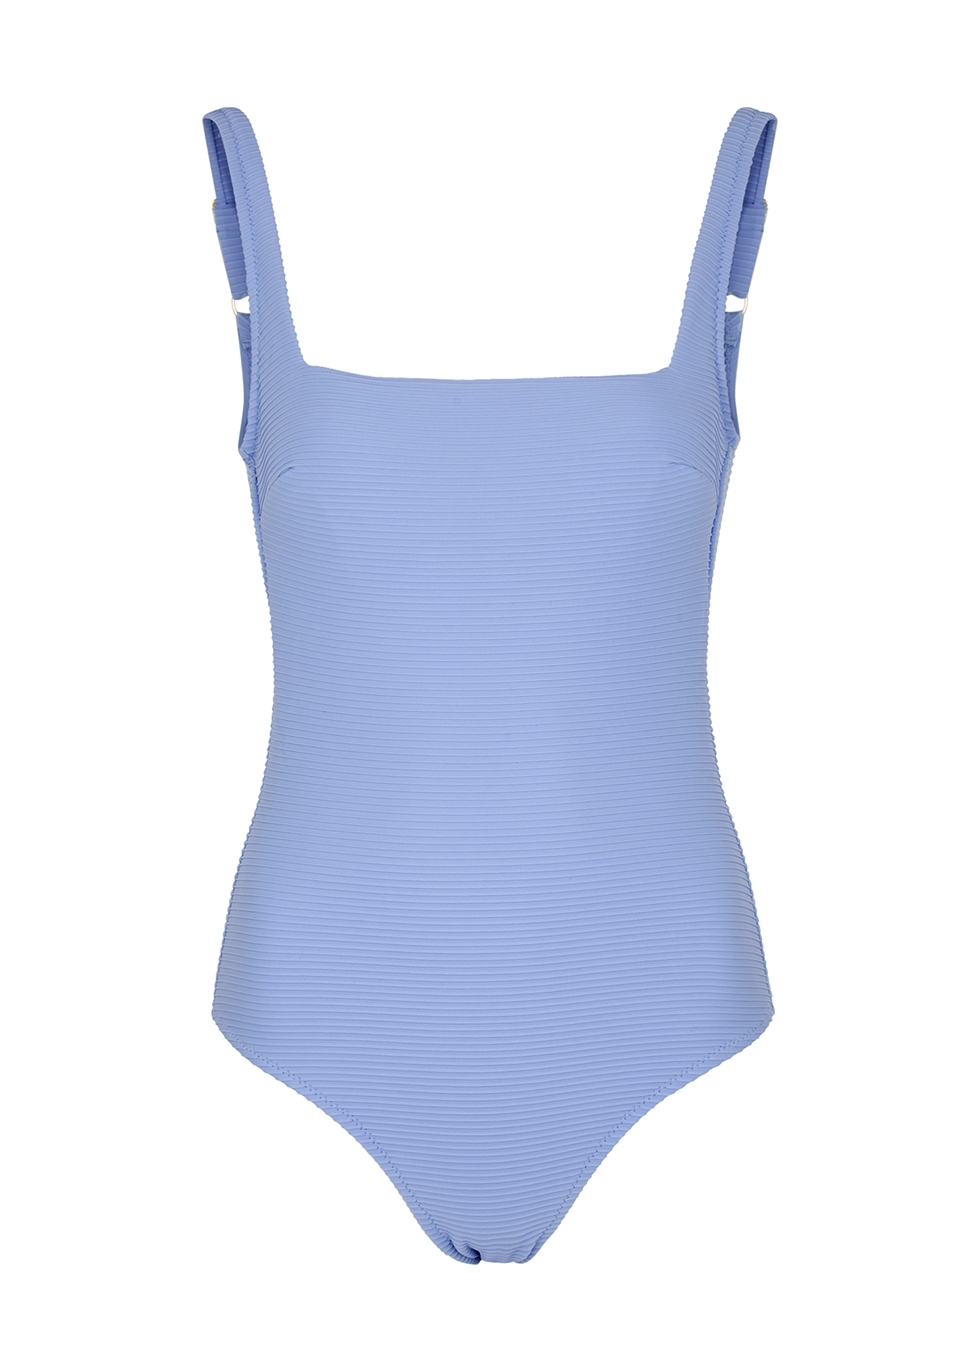 Bora Bora light blue lace-up swimsuit